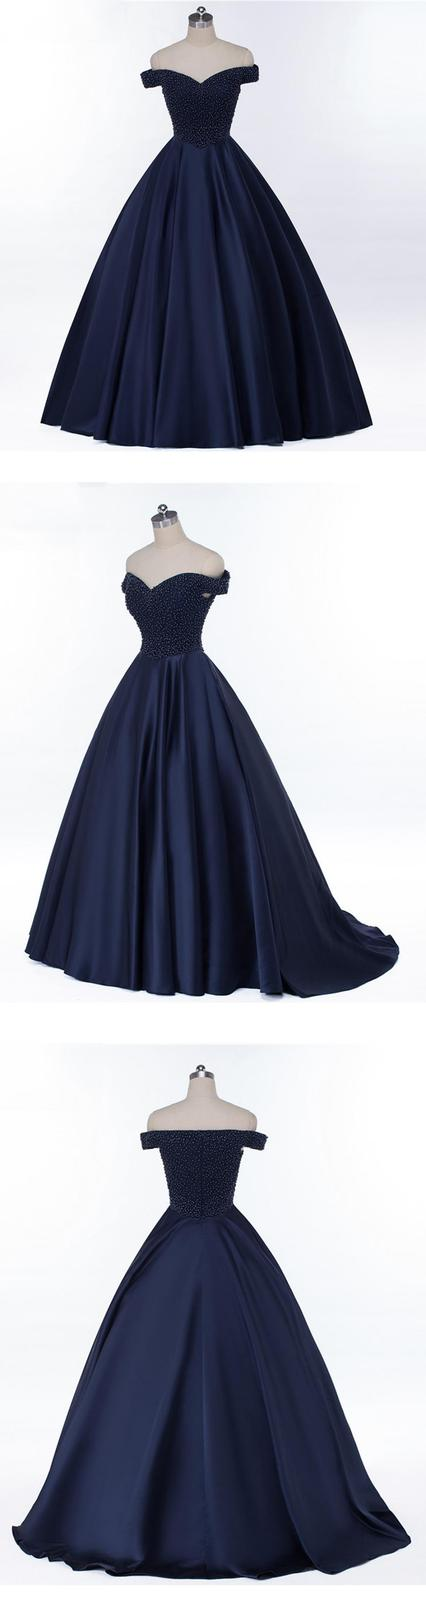 Primary image for Fashion Navy Blue Beaded A Line Long Prom Dresses Sweet Quinceanera Dress Junior